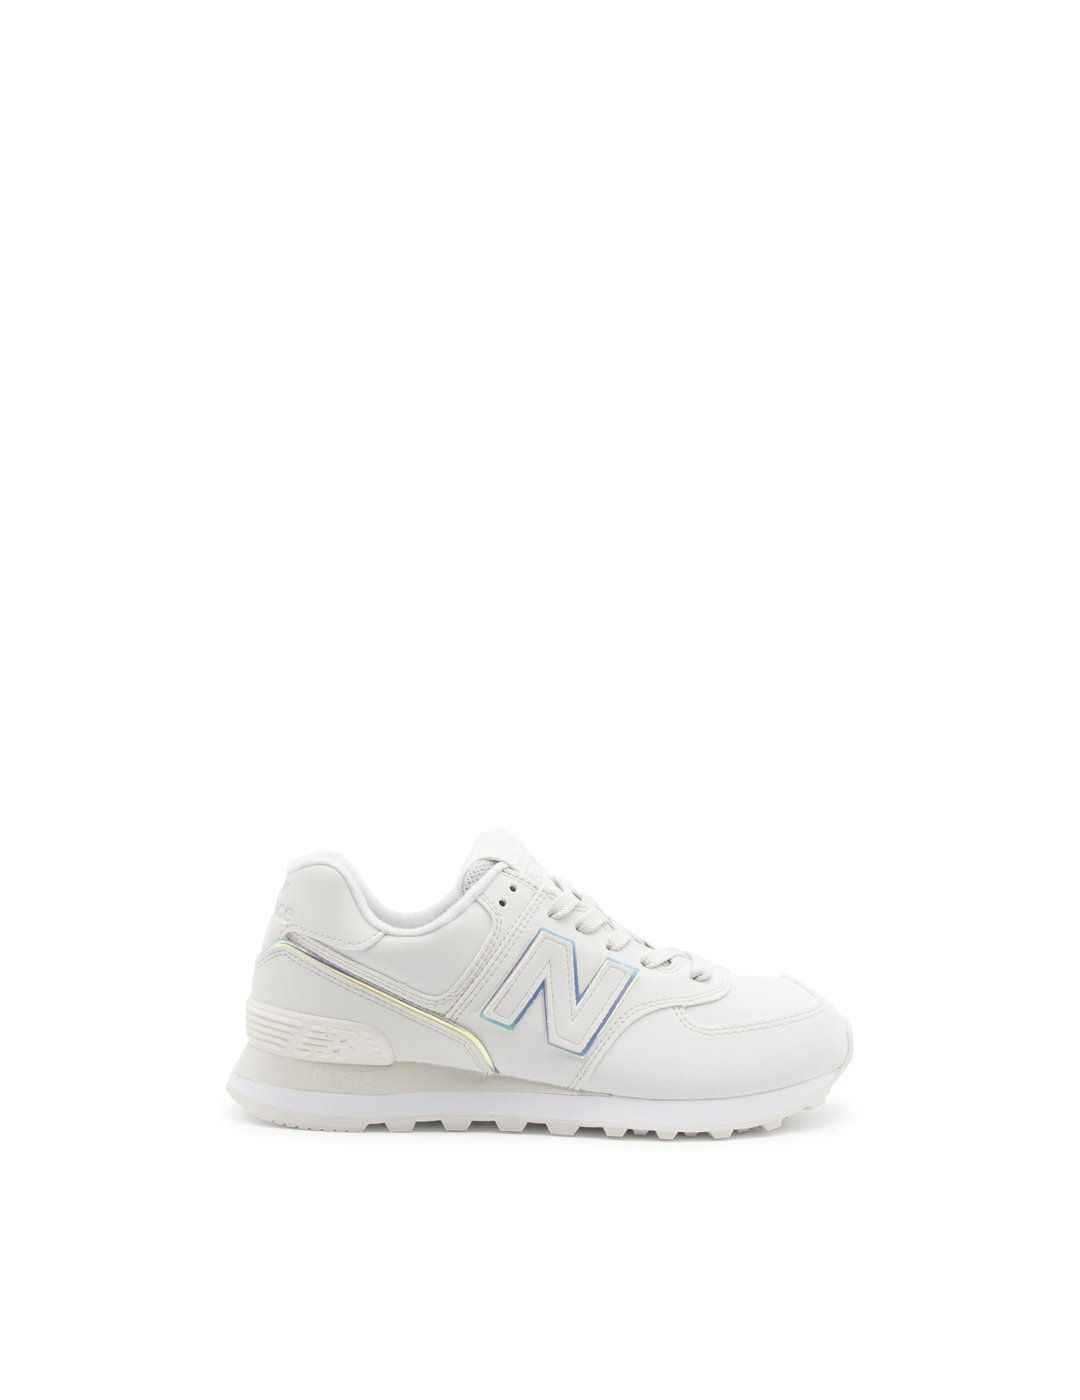 New Balance NEW BALANCE WOMEN'S WHITE LEATHER SNEAKERS